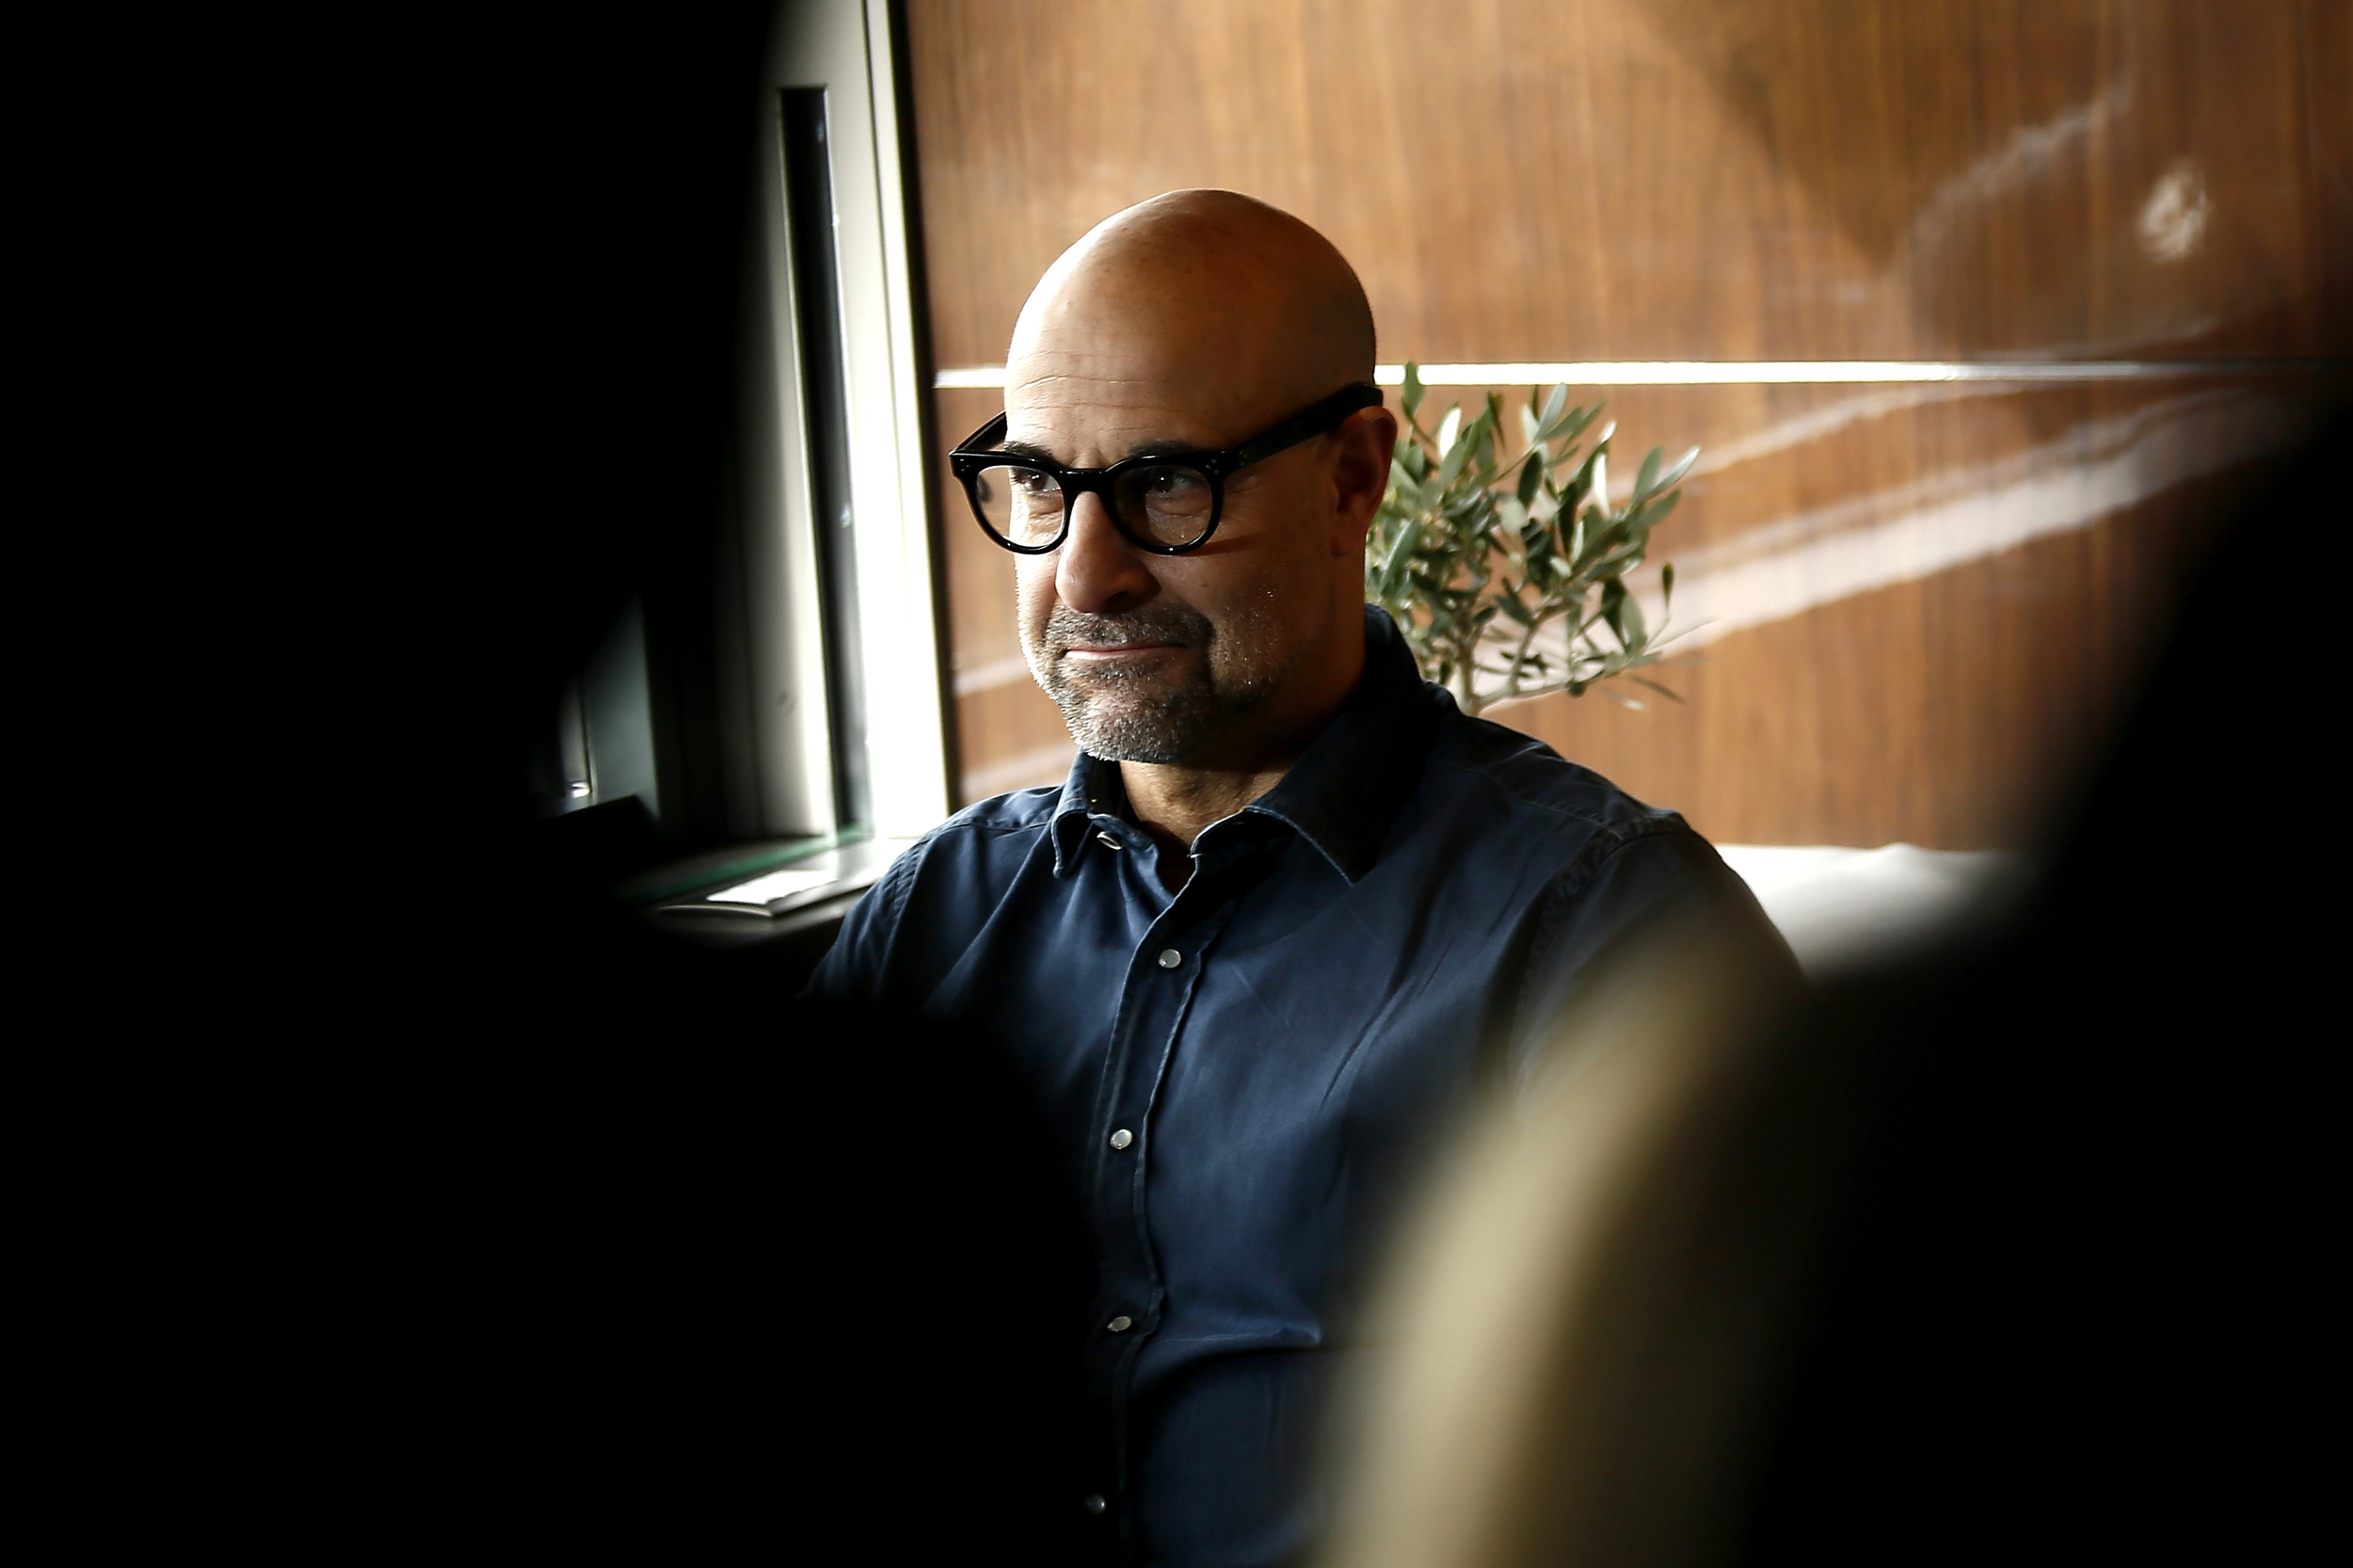 Stanley Tucci reveals he was treated for cancer